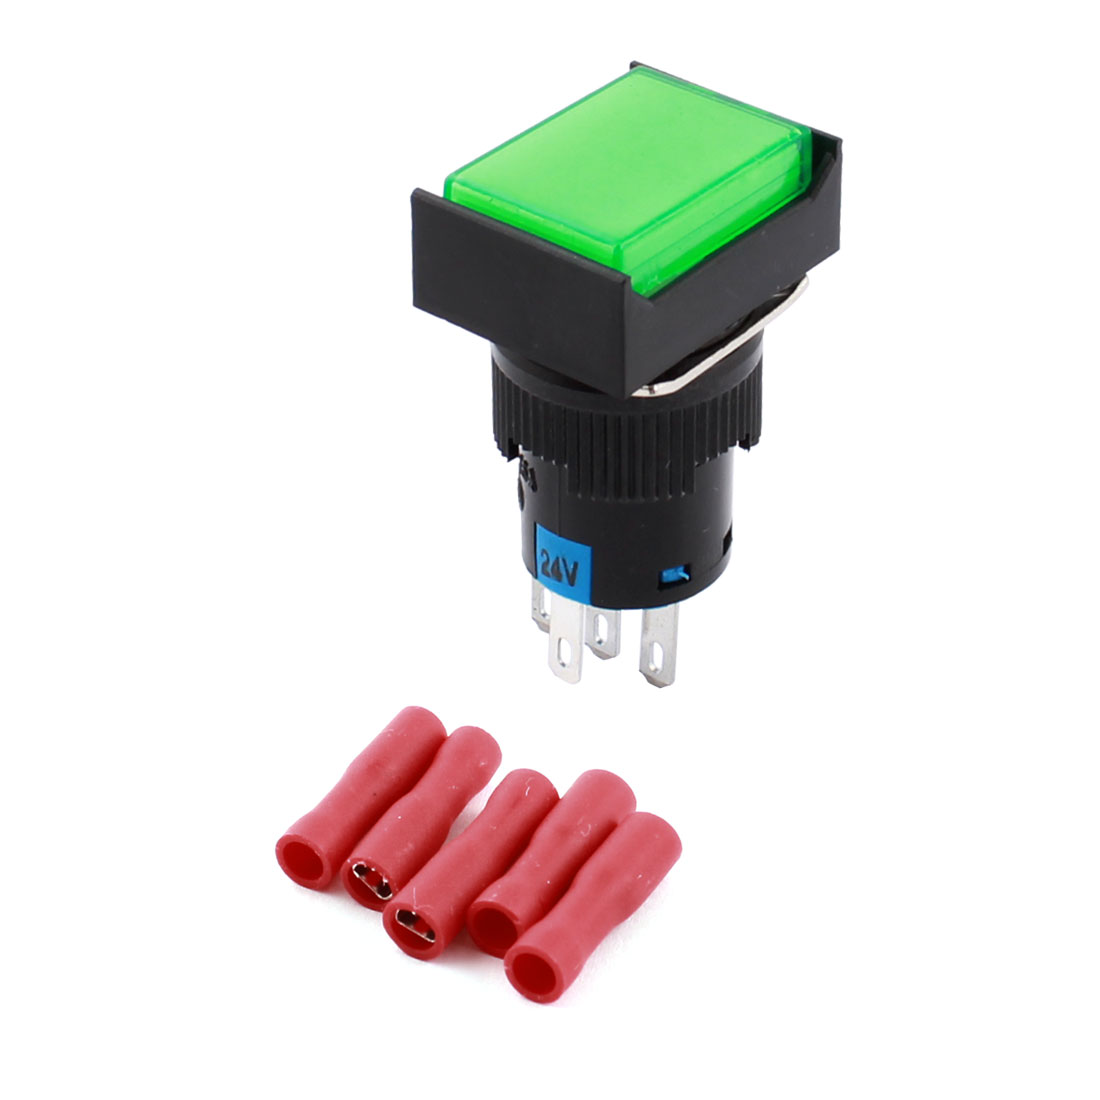 DC 24V Green Pilot Light 5Pins 16mm Threaded Panel Mounted SPDT Momentary Rectangle Head Pushbutton Switch w Crimp Terminals